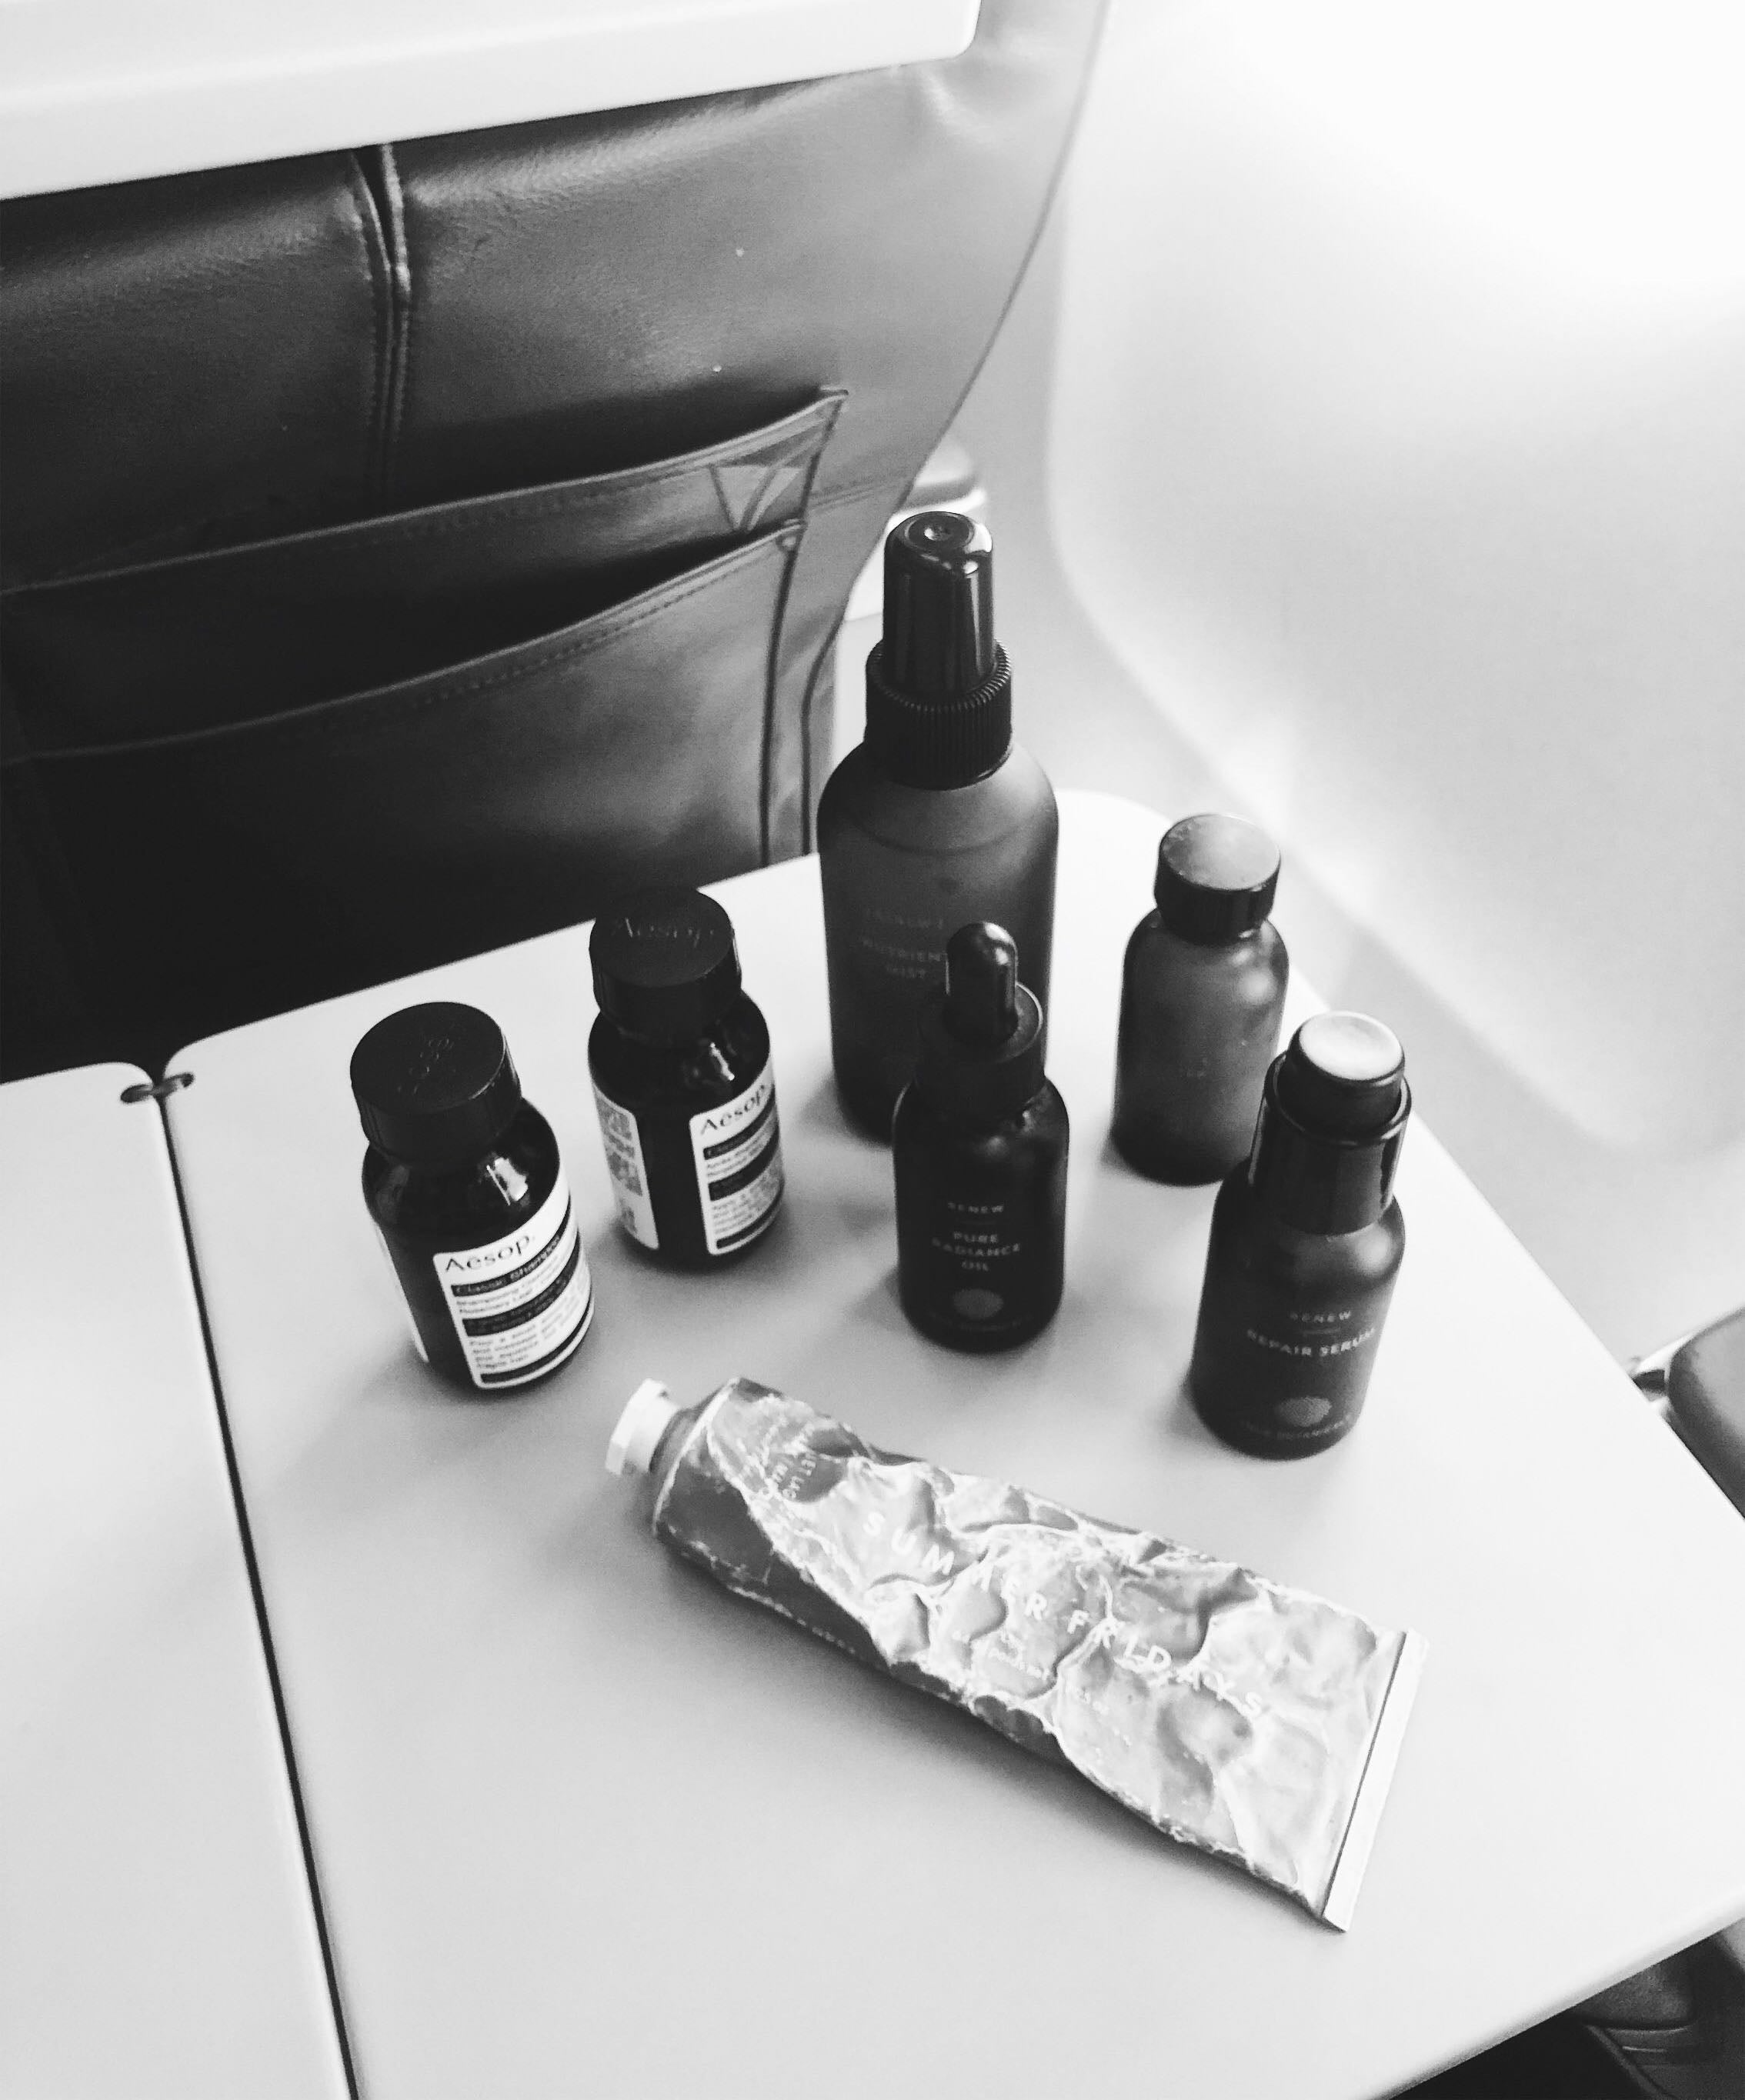 Janessa Leone Travel Essentials | Oils, Serums, Creams, and hydrating tips for flights